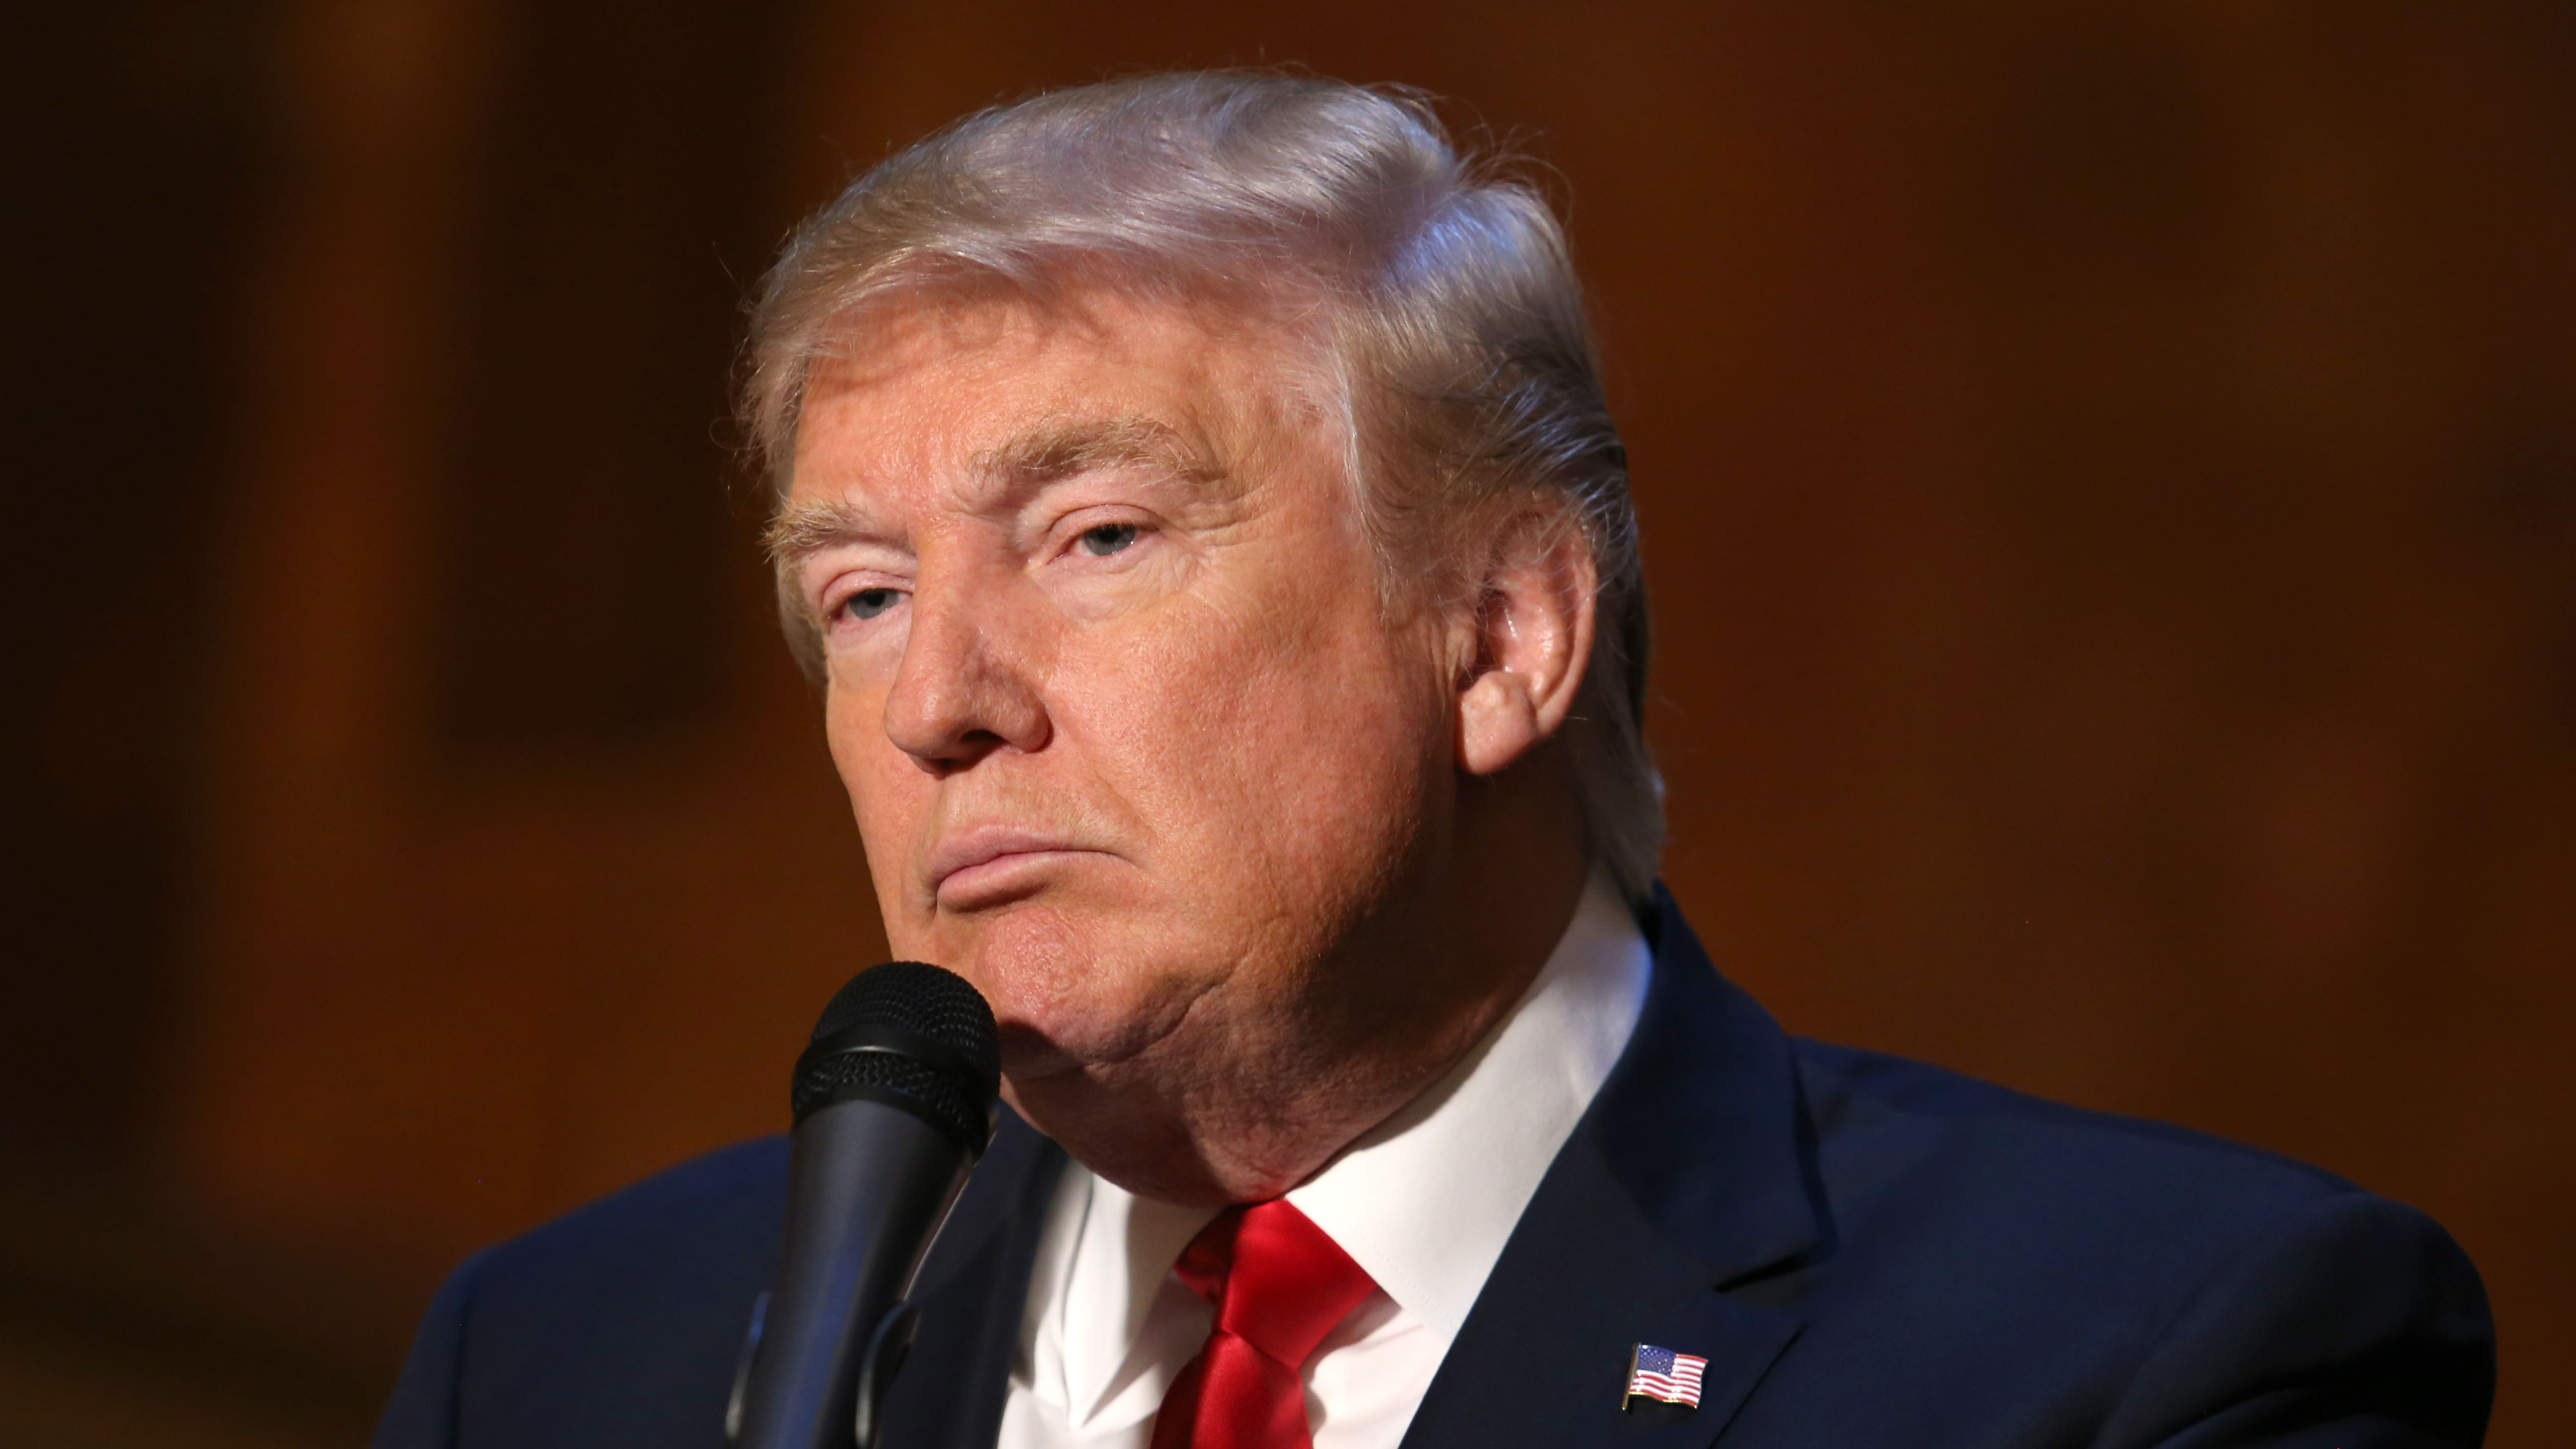 Businessman and Republican presidential candidate Donald Trump speaks during a press conference at Trump Tower on Tuesday, Nov. 3, 2015, in New York.